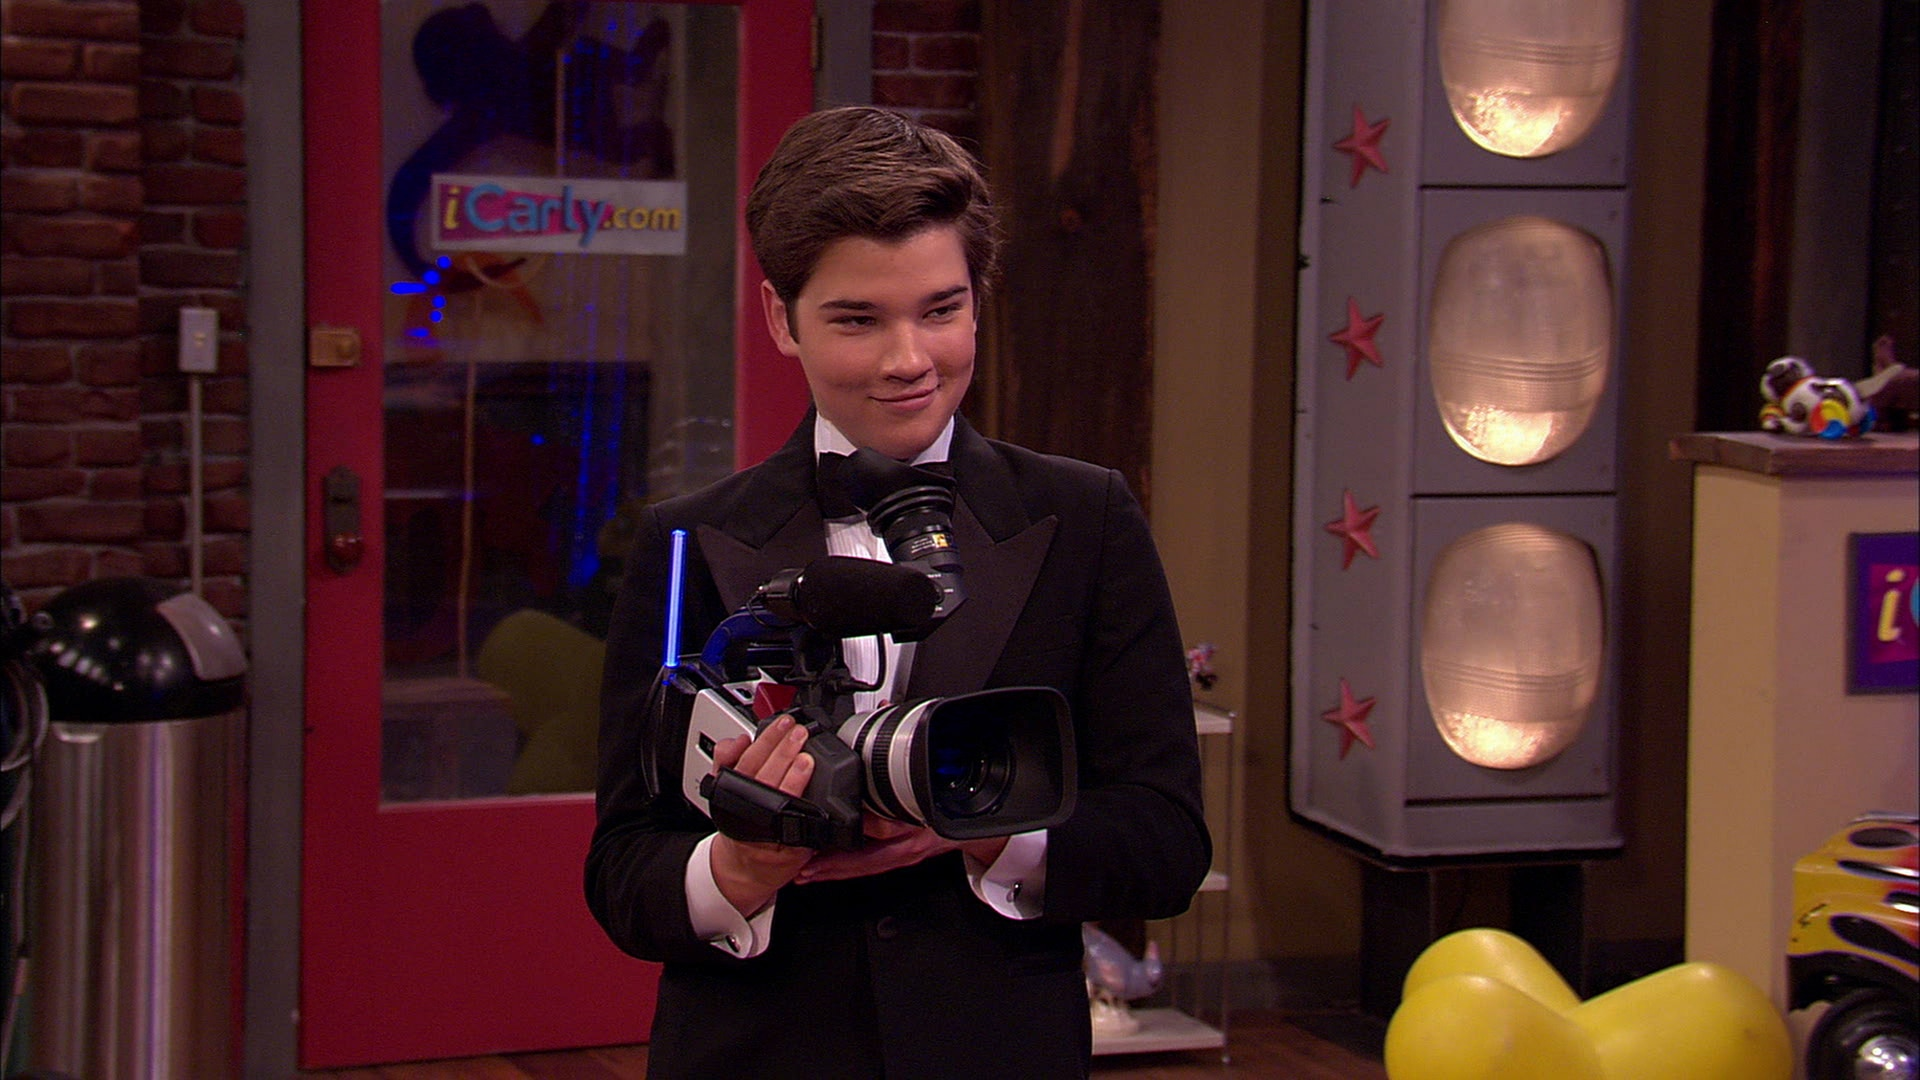 iCarly Awards